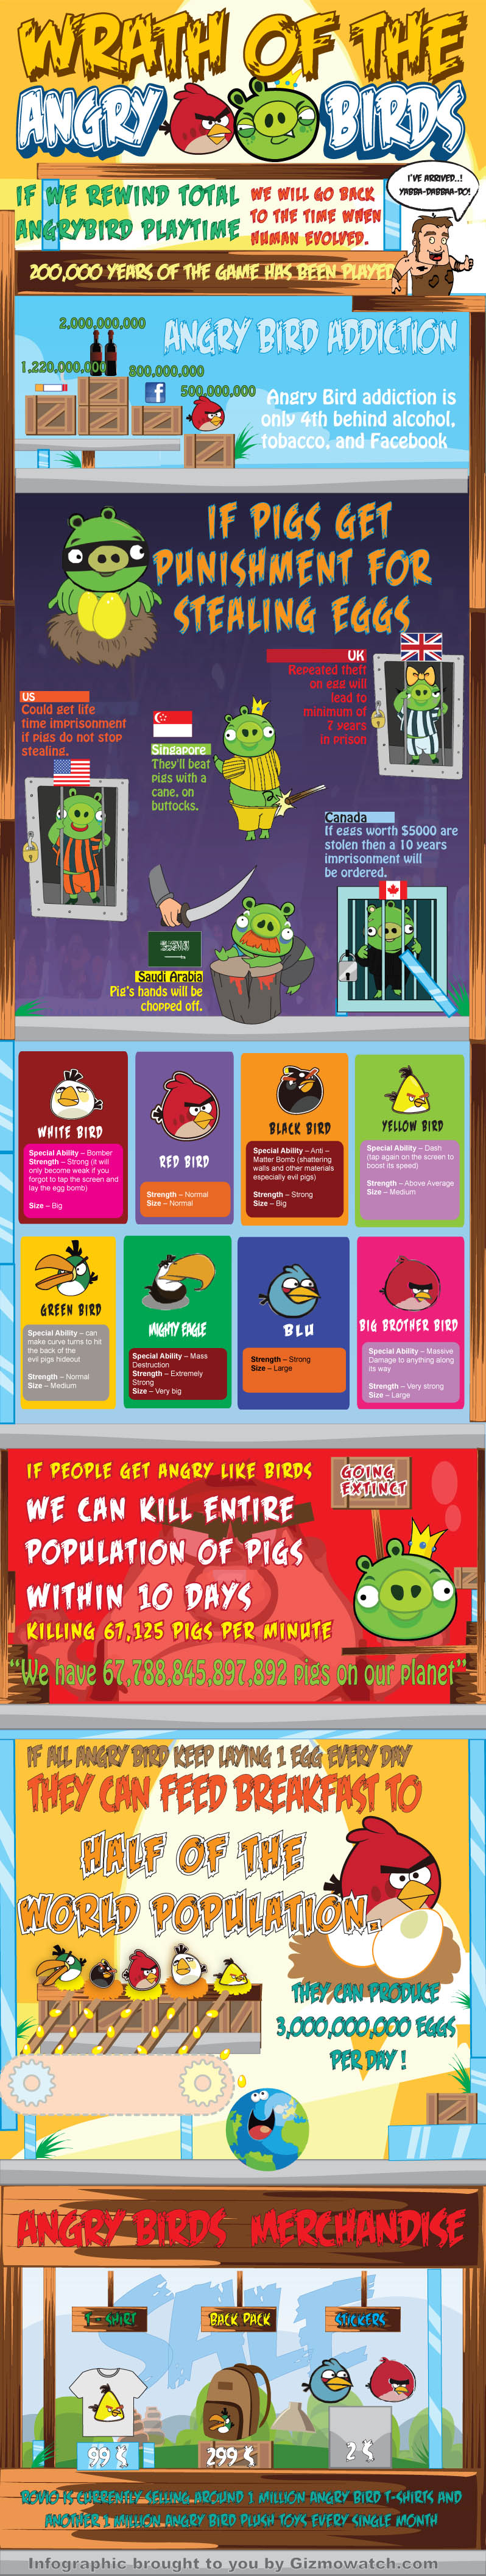 The Big Big World of Angry Birds